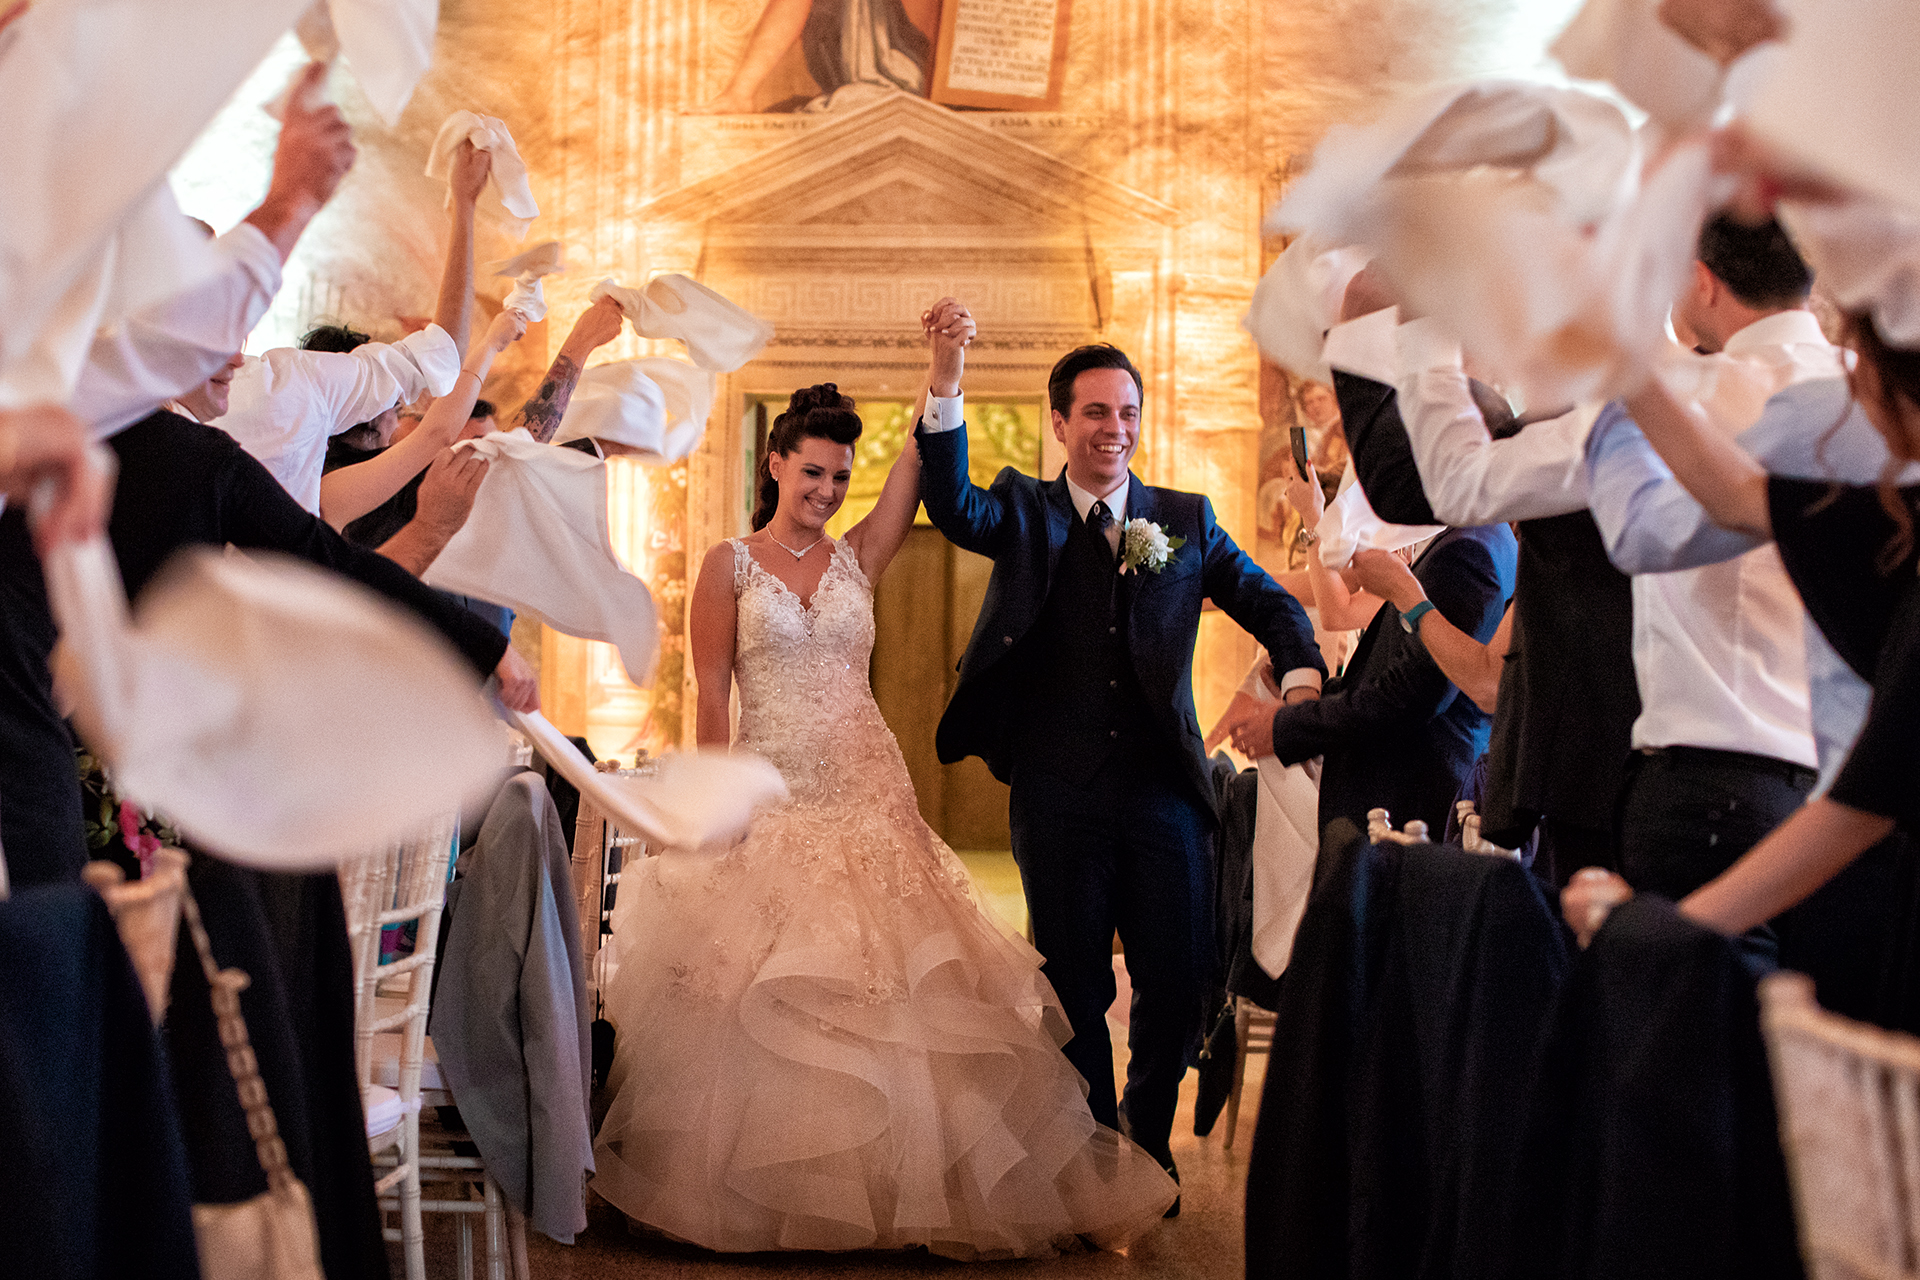 Candid wedding photography showing incredible entrance of the bride and groom to the dinner